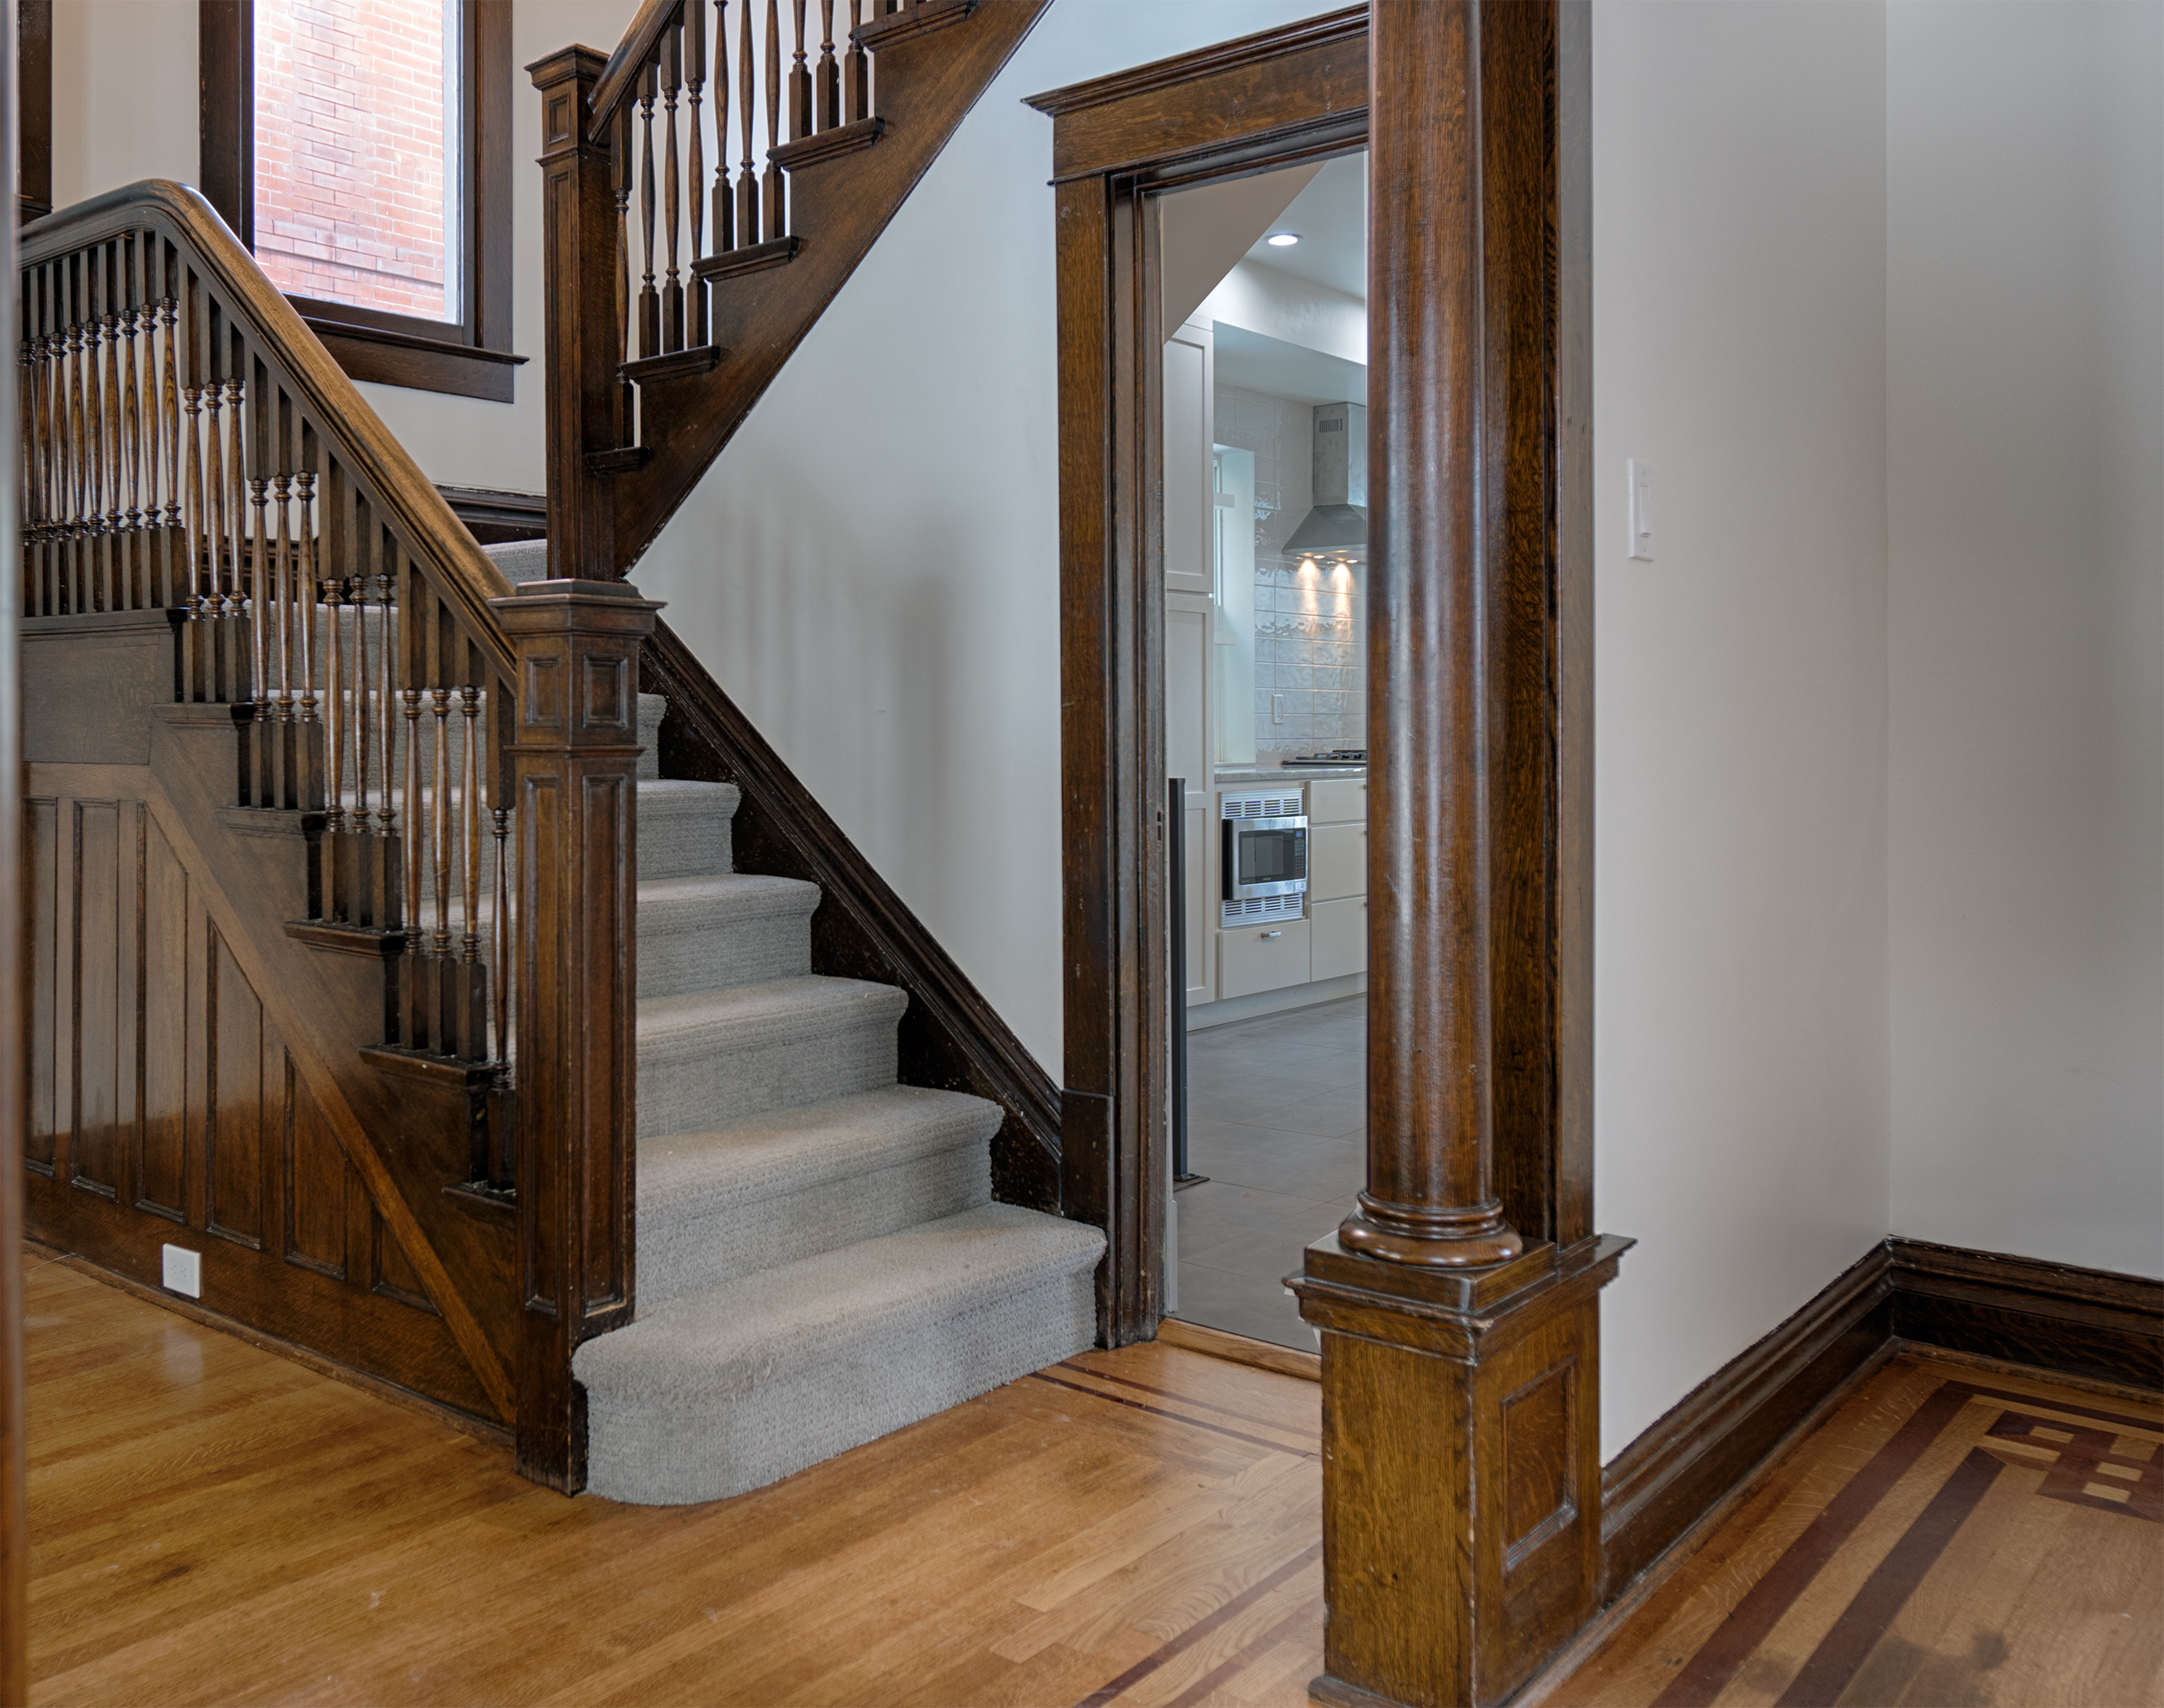 2110 Gaylord stairs and kitchen.jpg